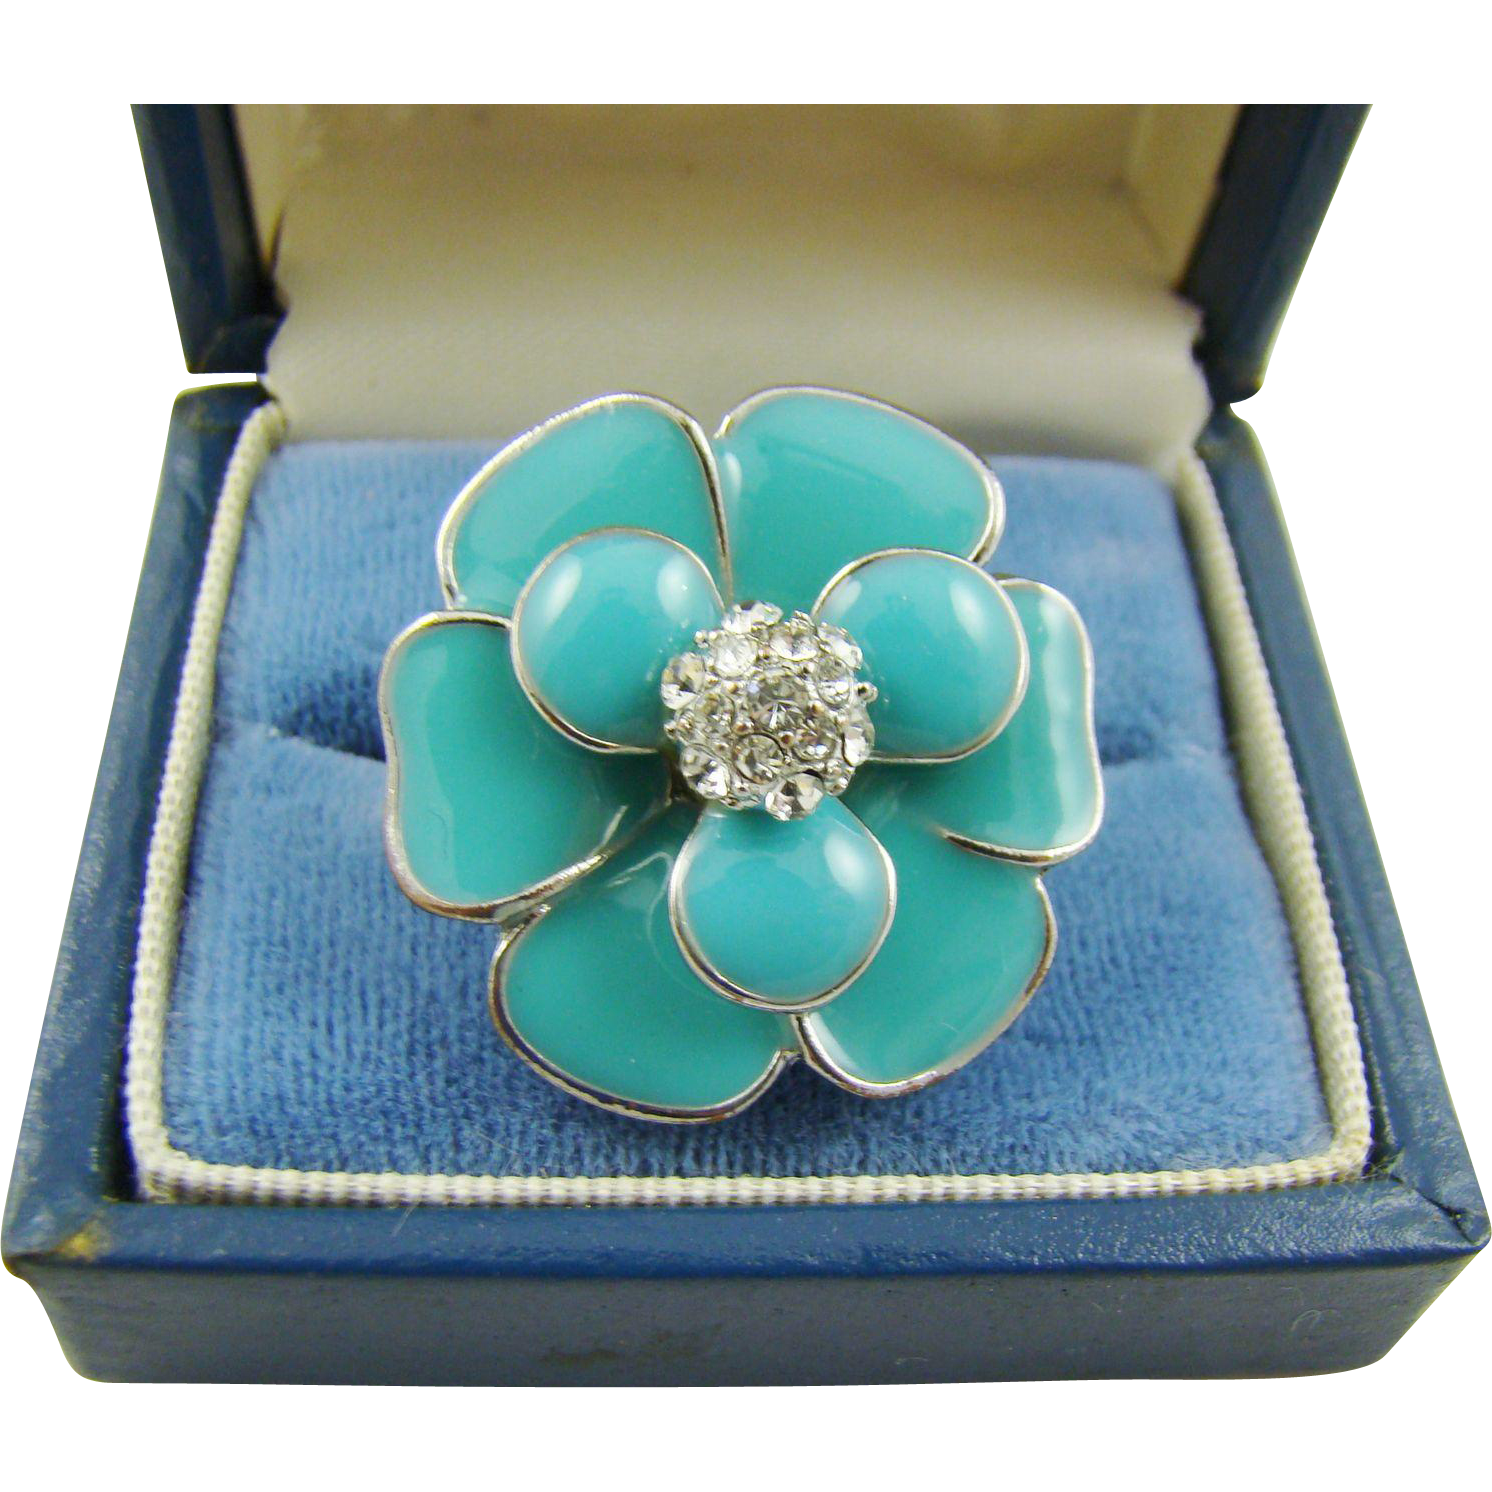 Turquoise Enamel Ring with Rhinestone Cluster